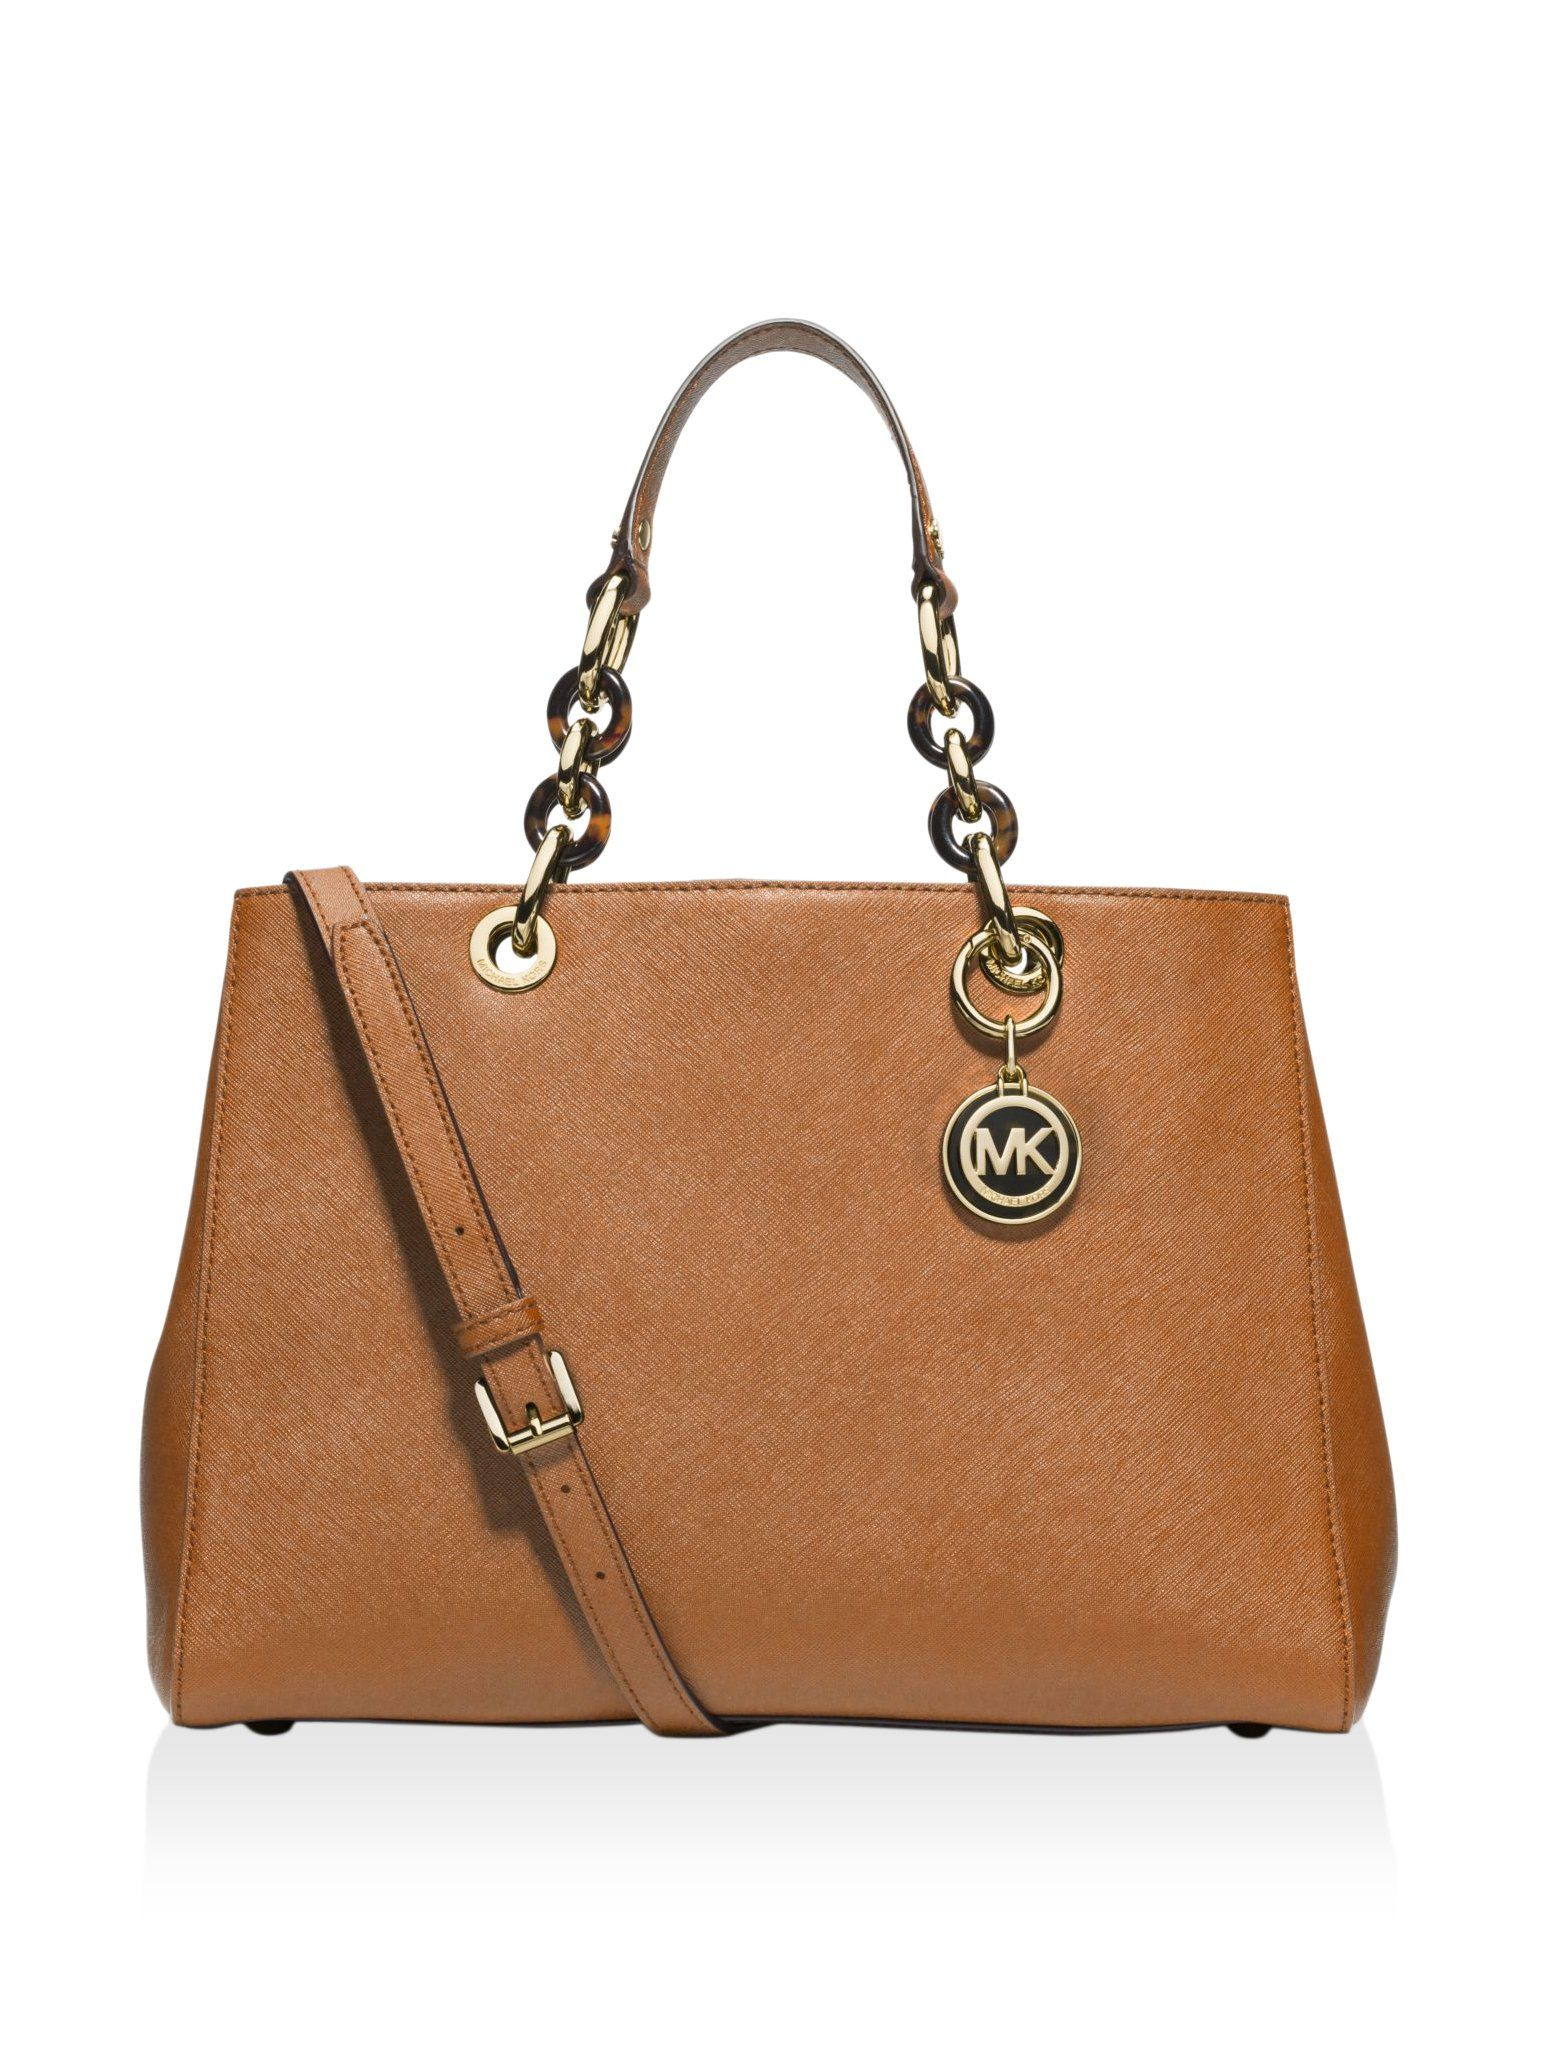 Michael Kors Cynthia Handbag See This Great Product Is An Affiliate Link